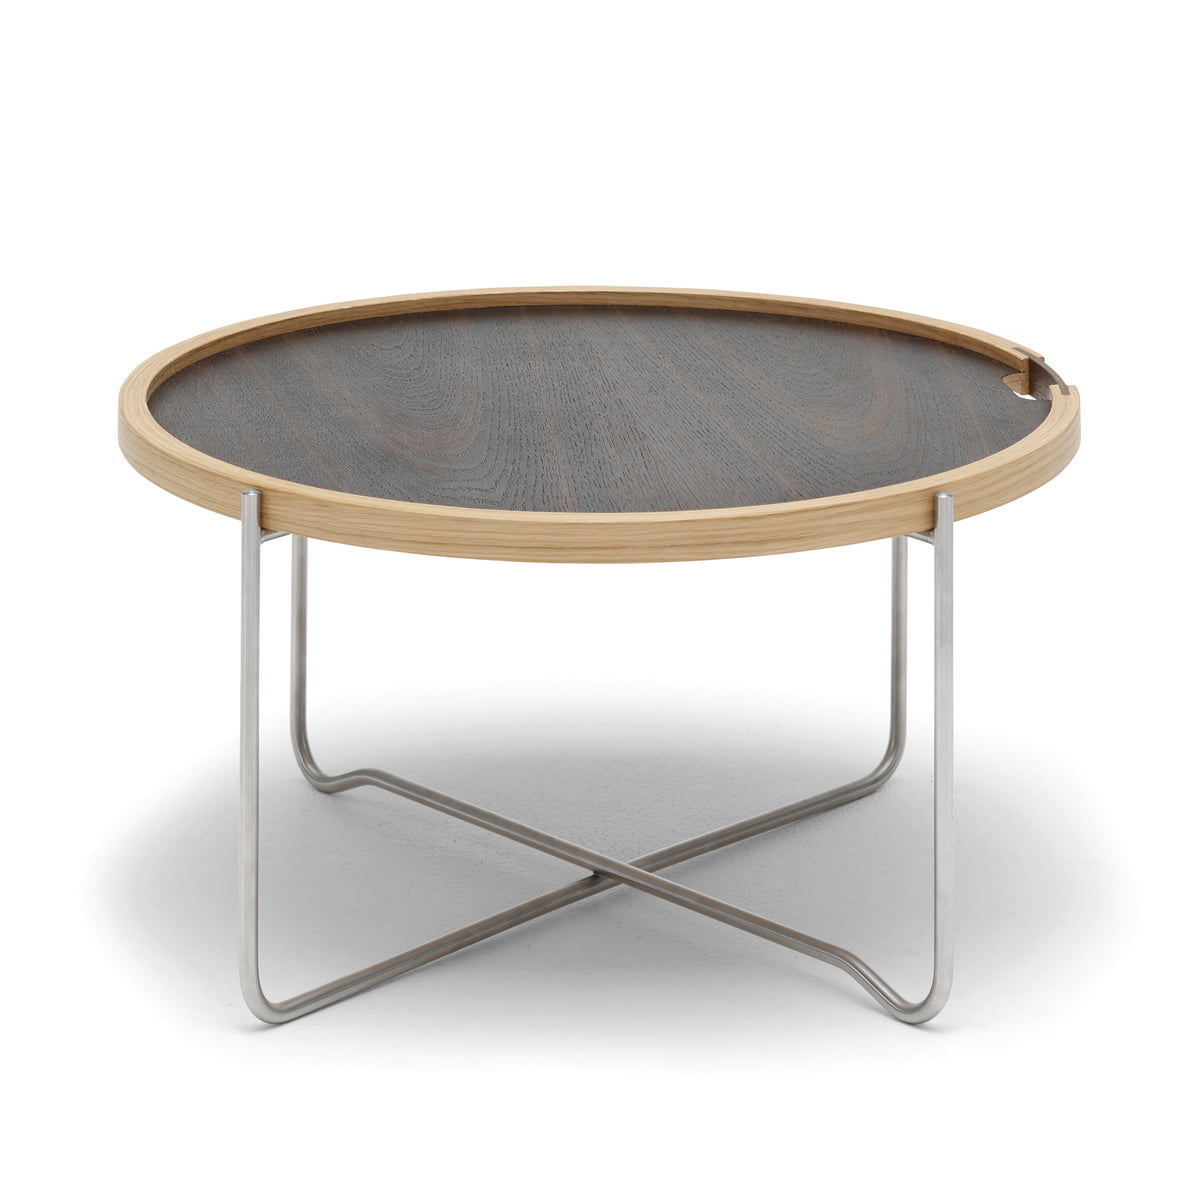 Carl hansen ch417 tray table eiche geraeuchert